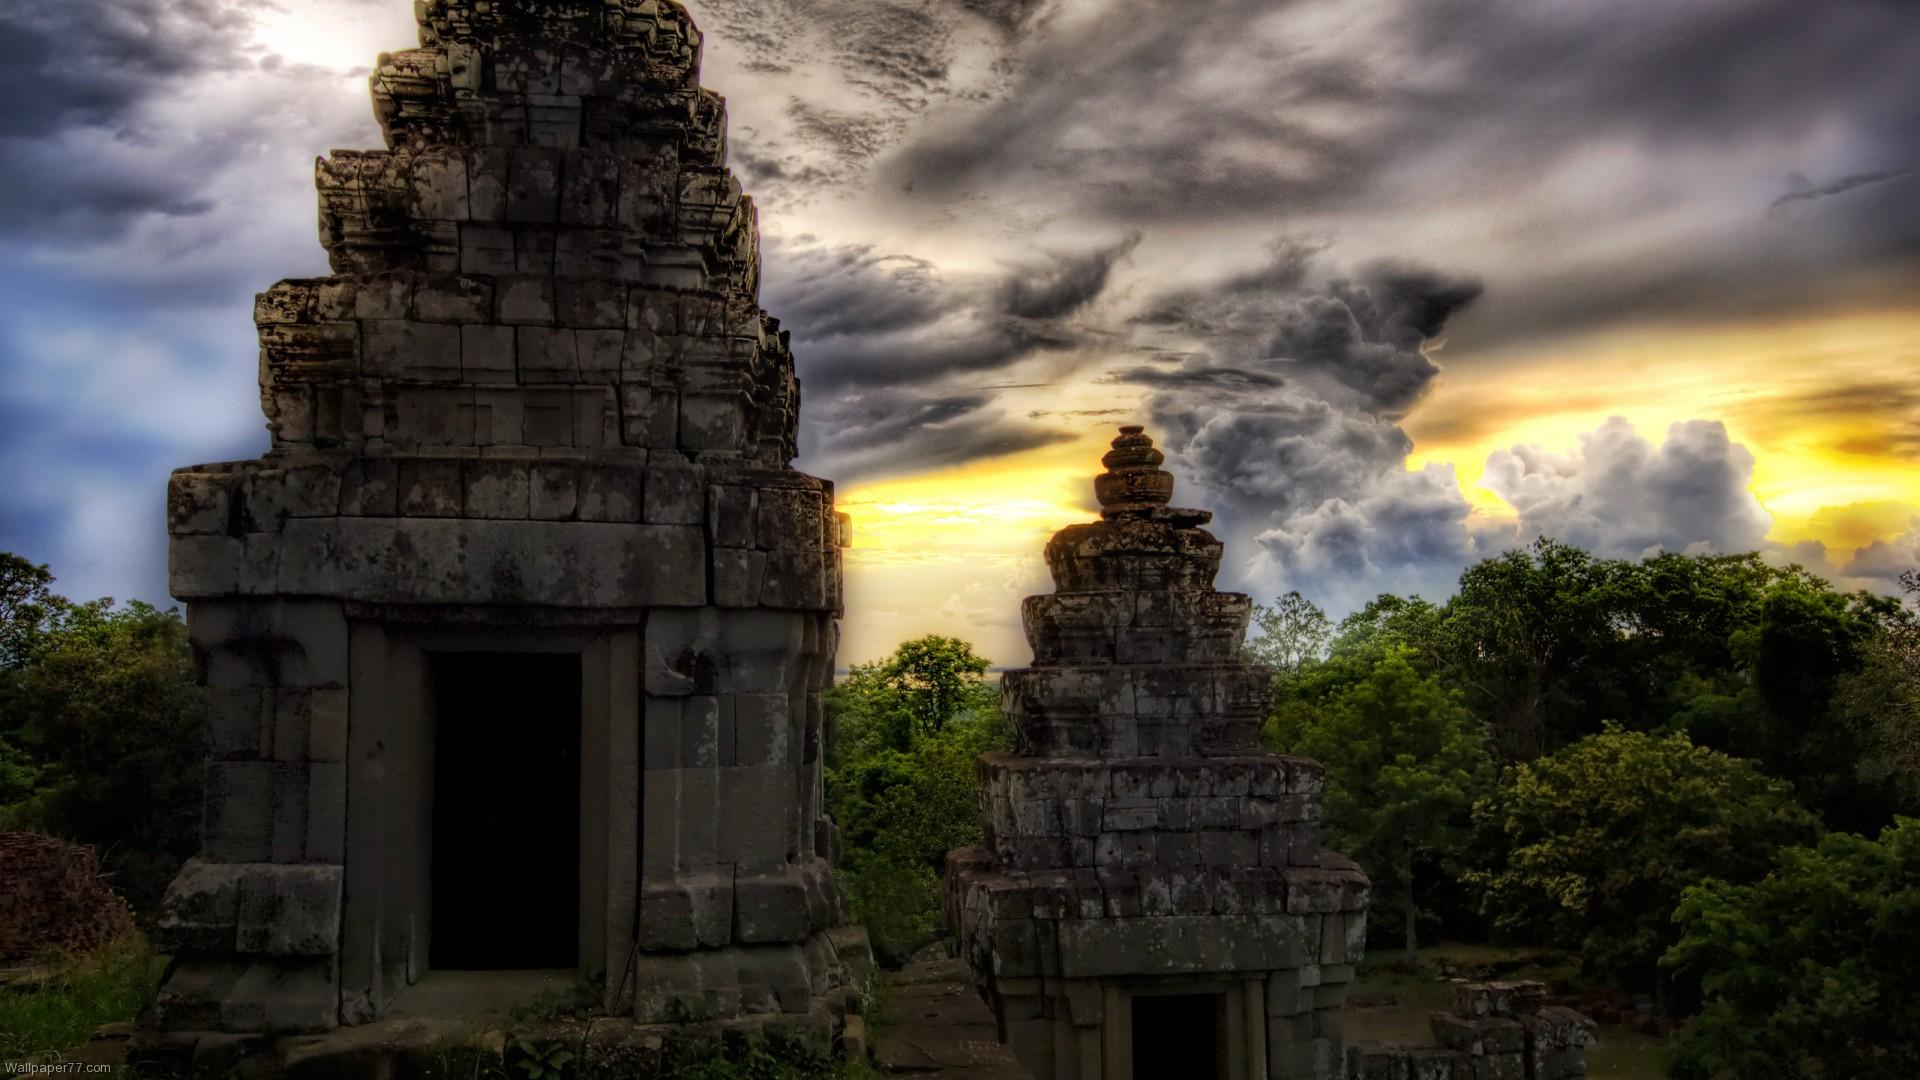 Cute Japanese Art 4k Wallpaper Ancient Asian Temples Hdr Wallpaper Nature And Landscape